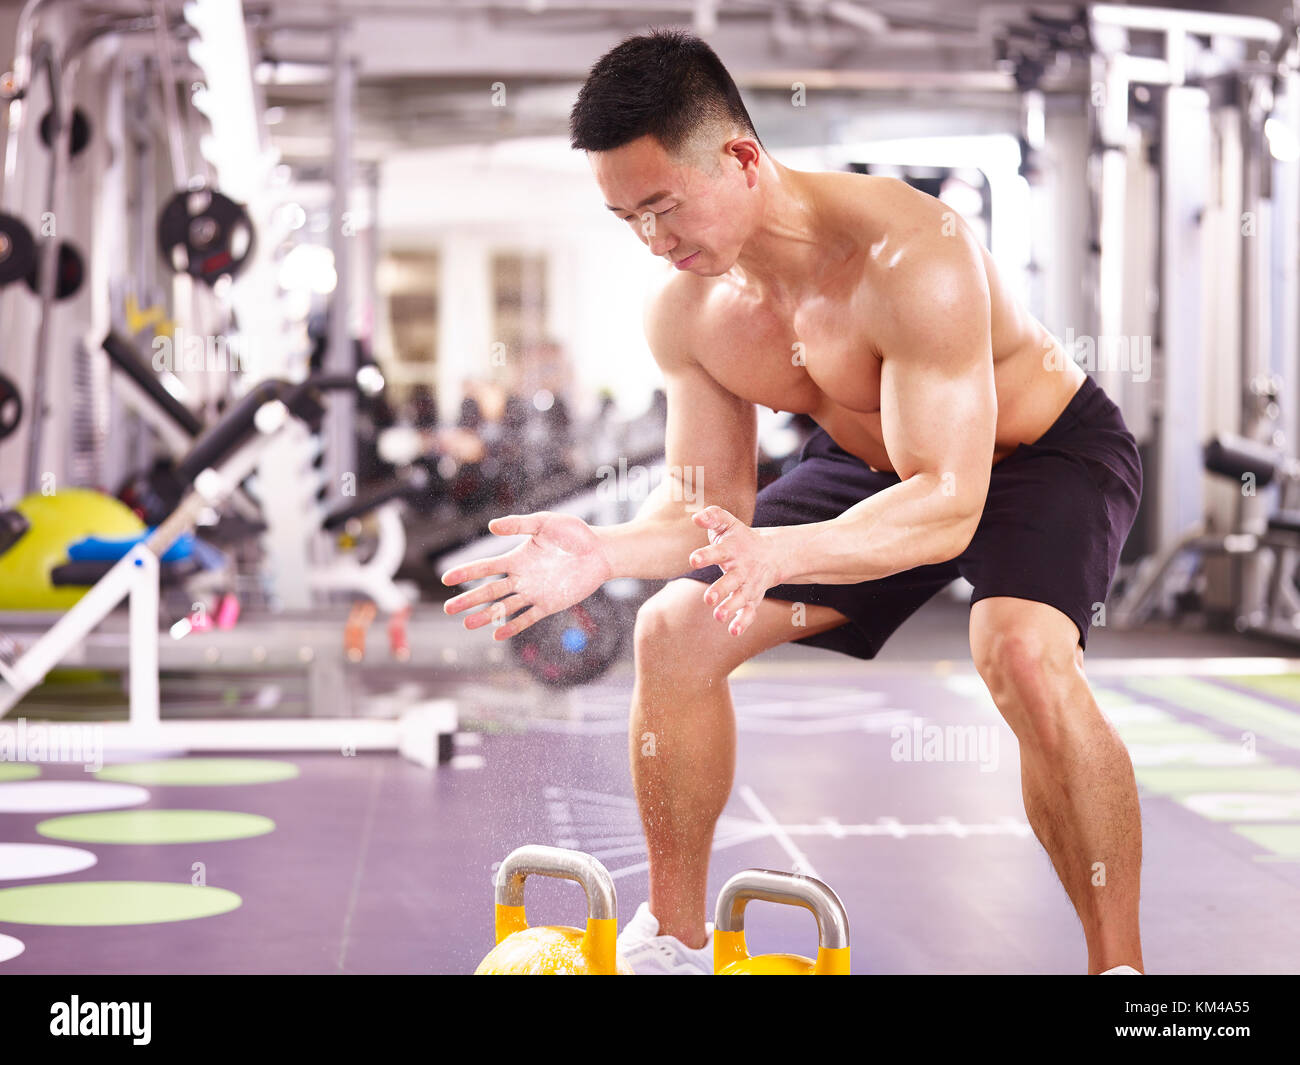 asian male bodybuilder working out in gym using kettle bells. - Stock Image